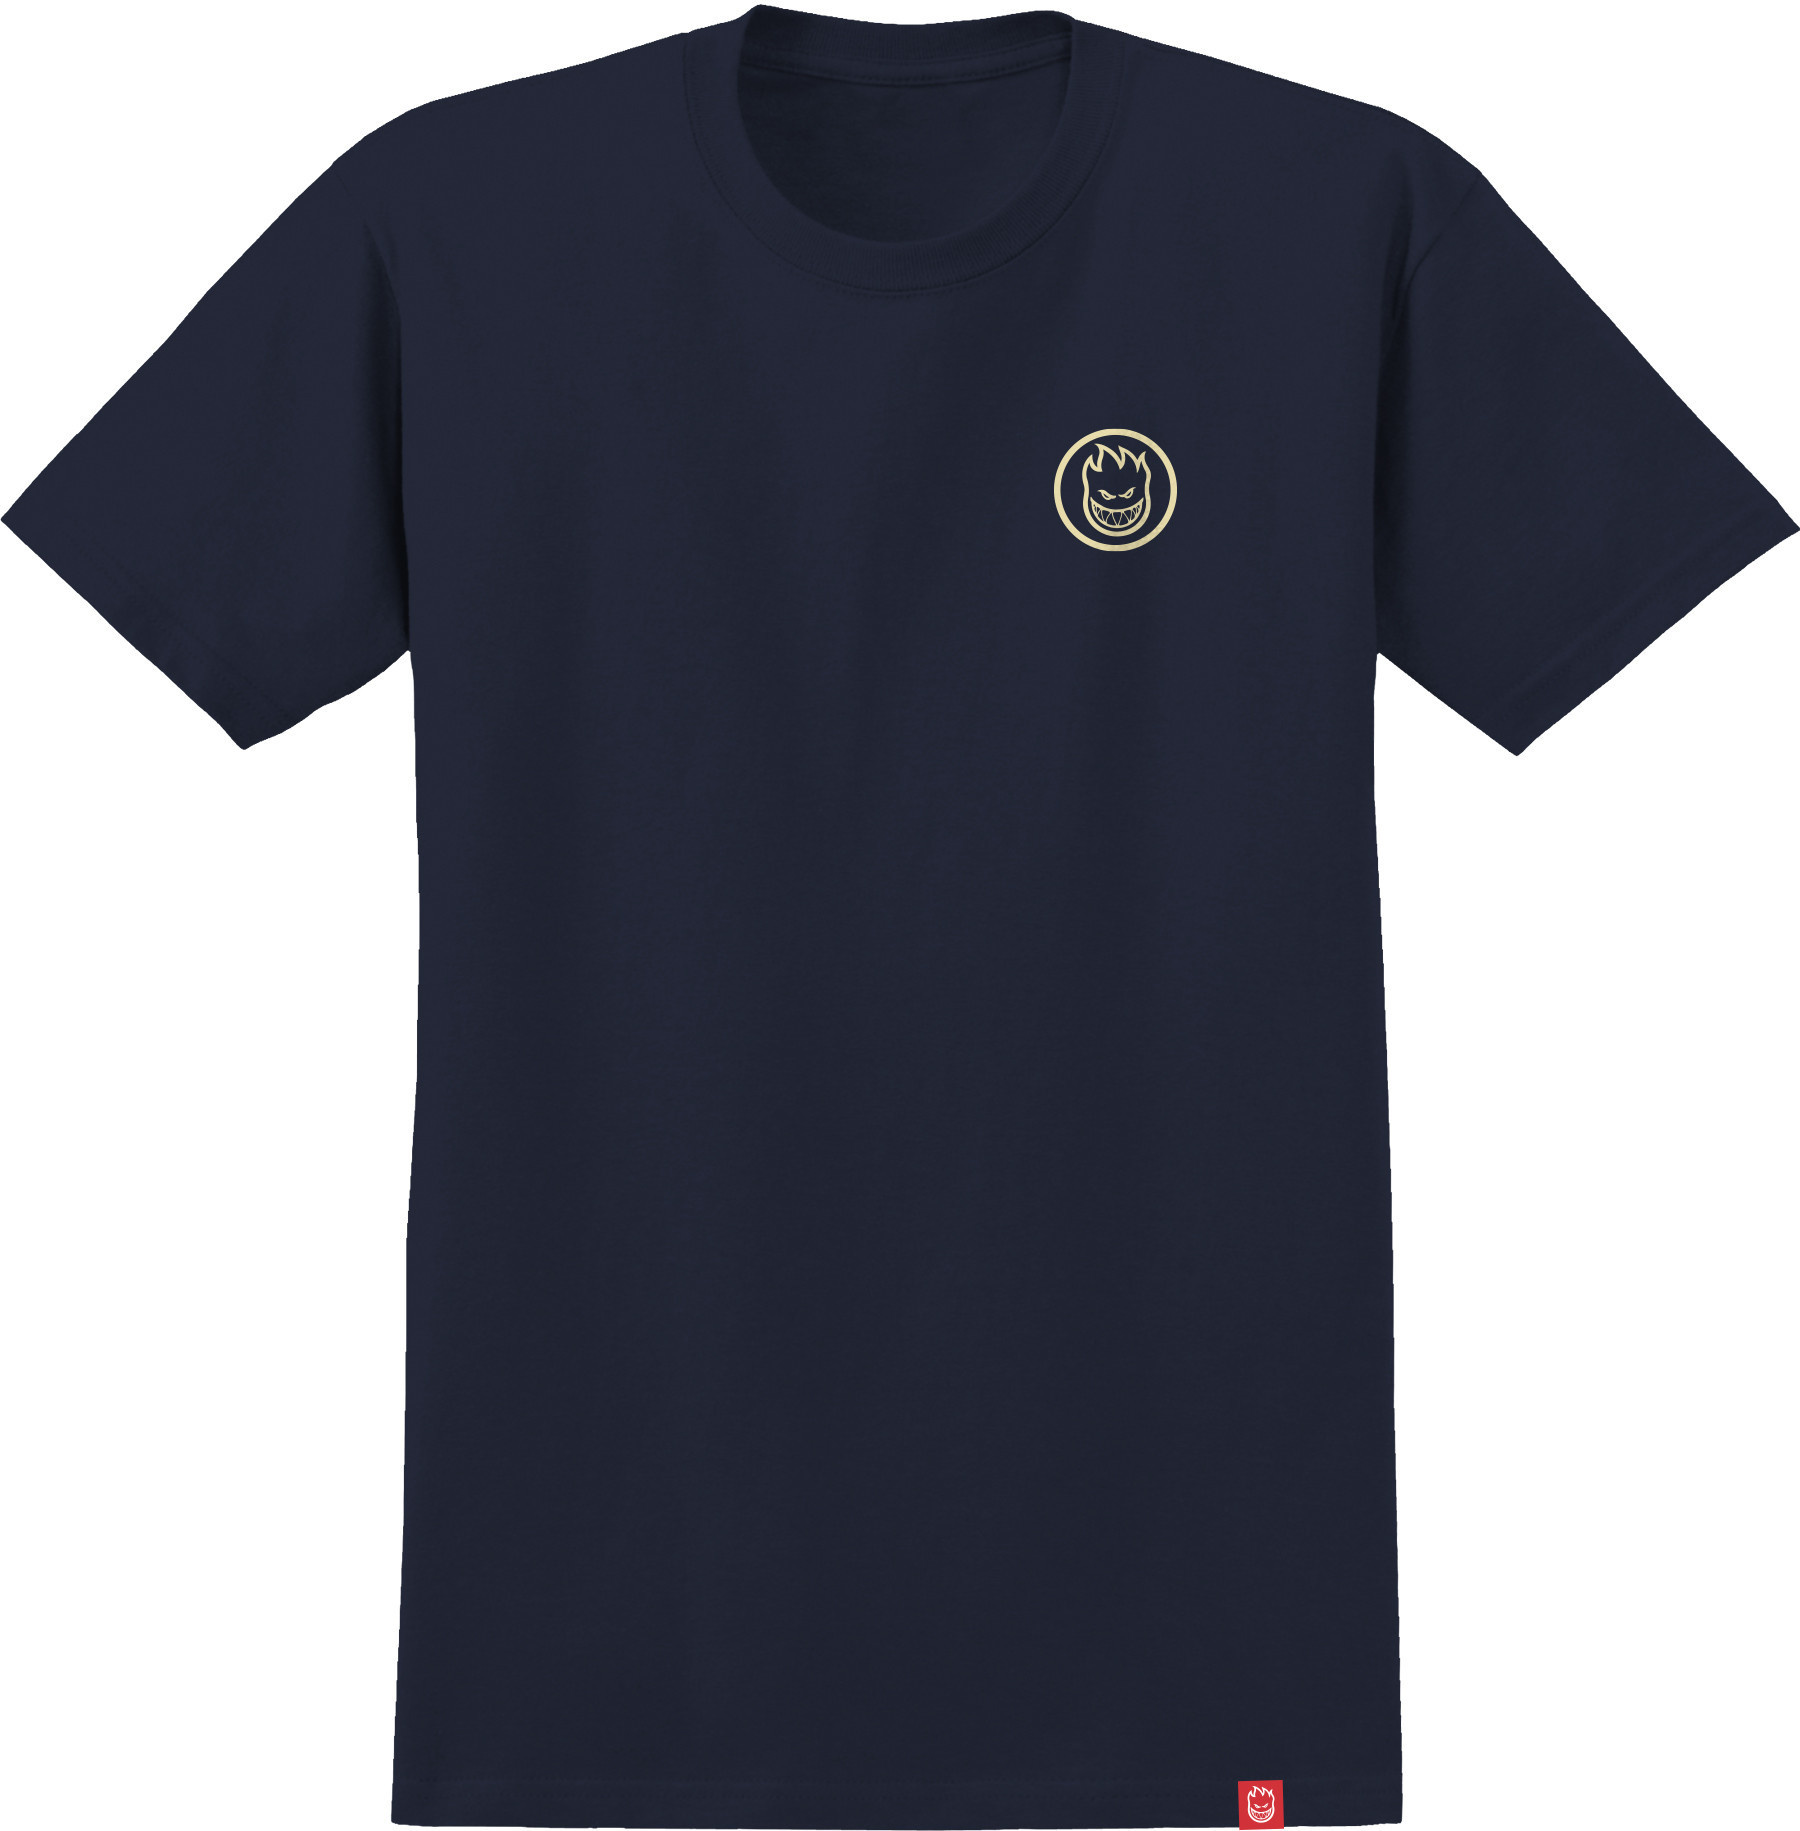 Spitfire Spitfire Classic Swirl Tee - Navy/Raw Discharge